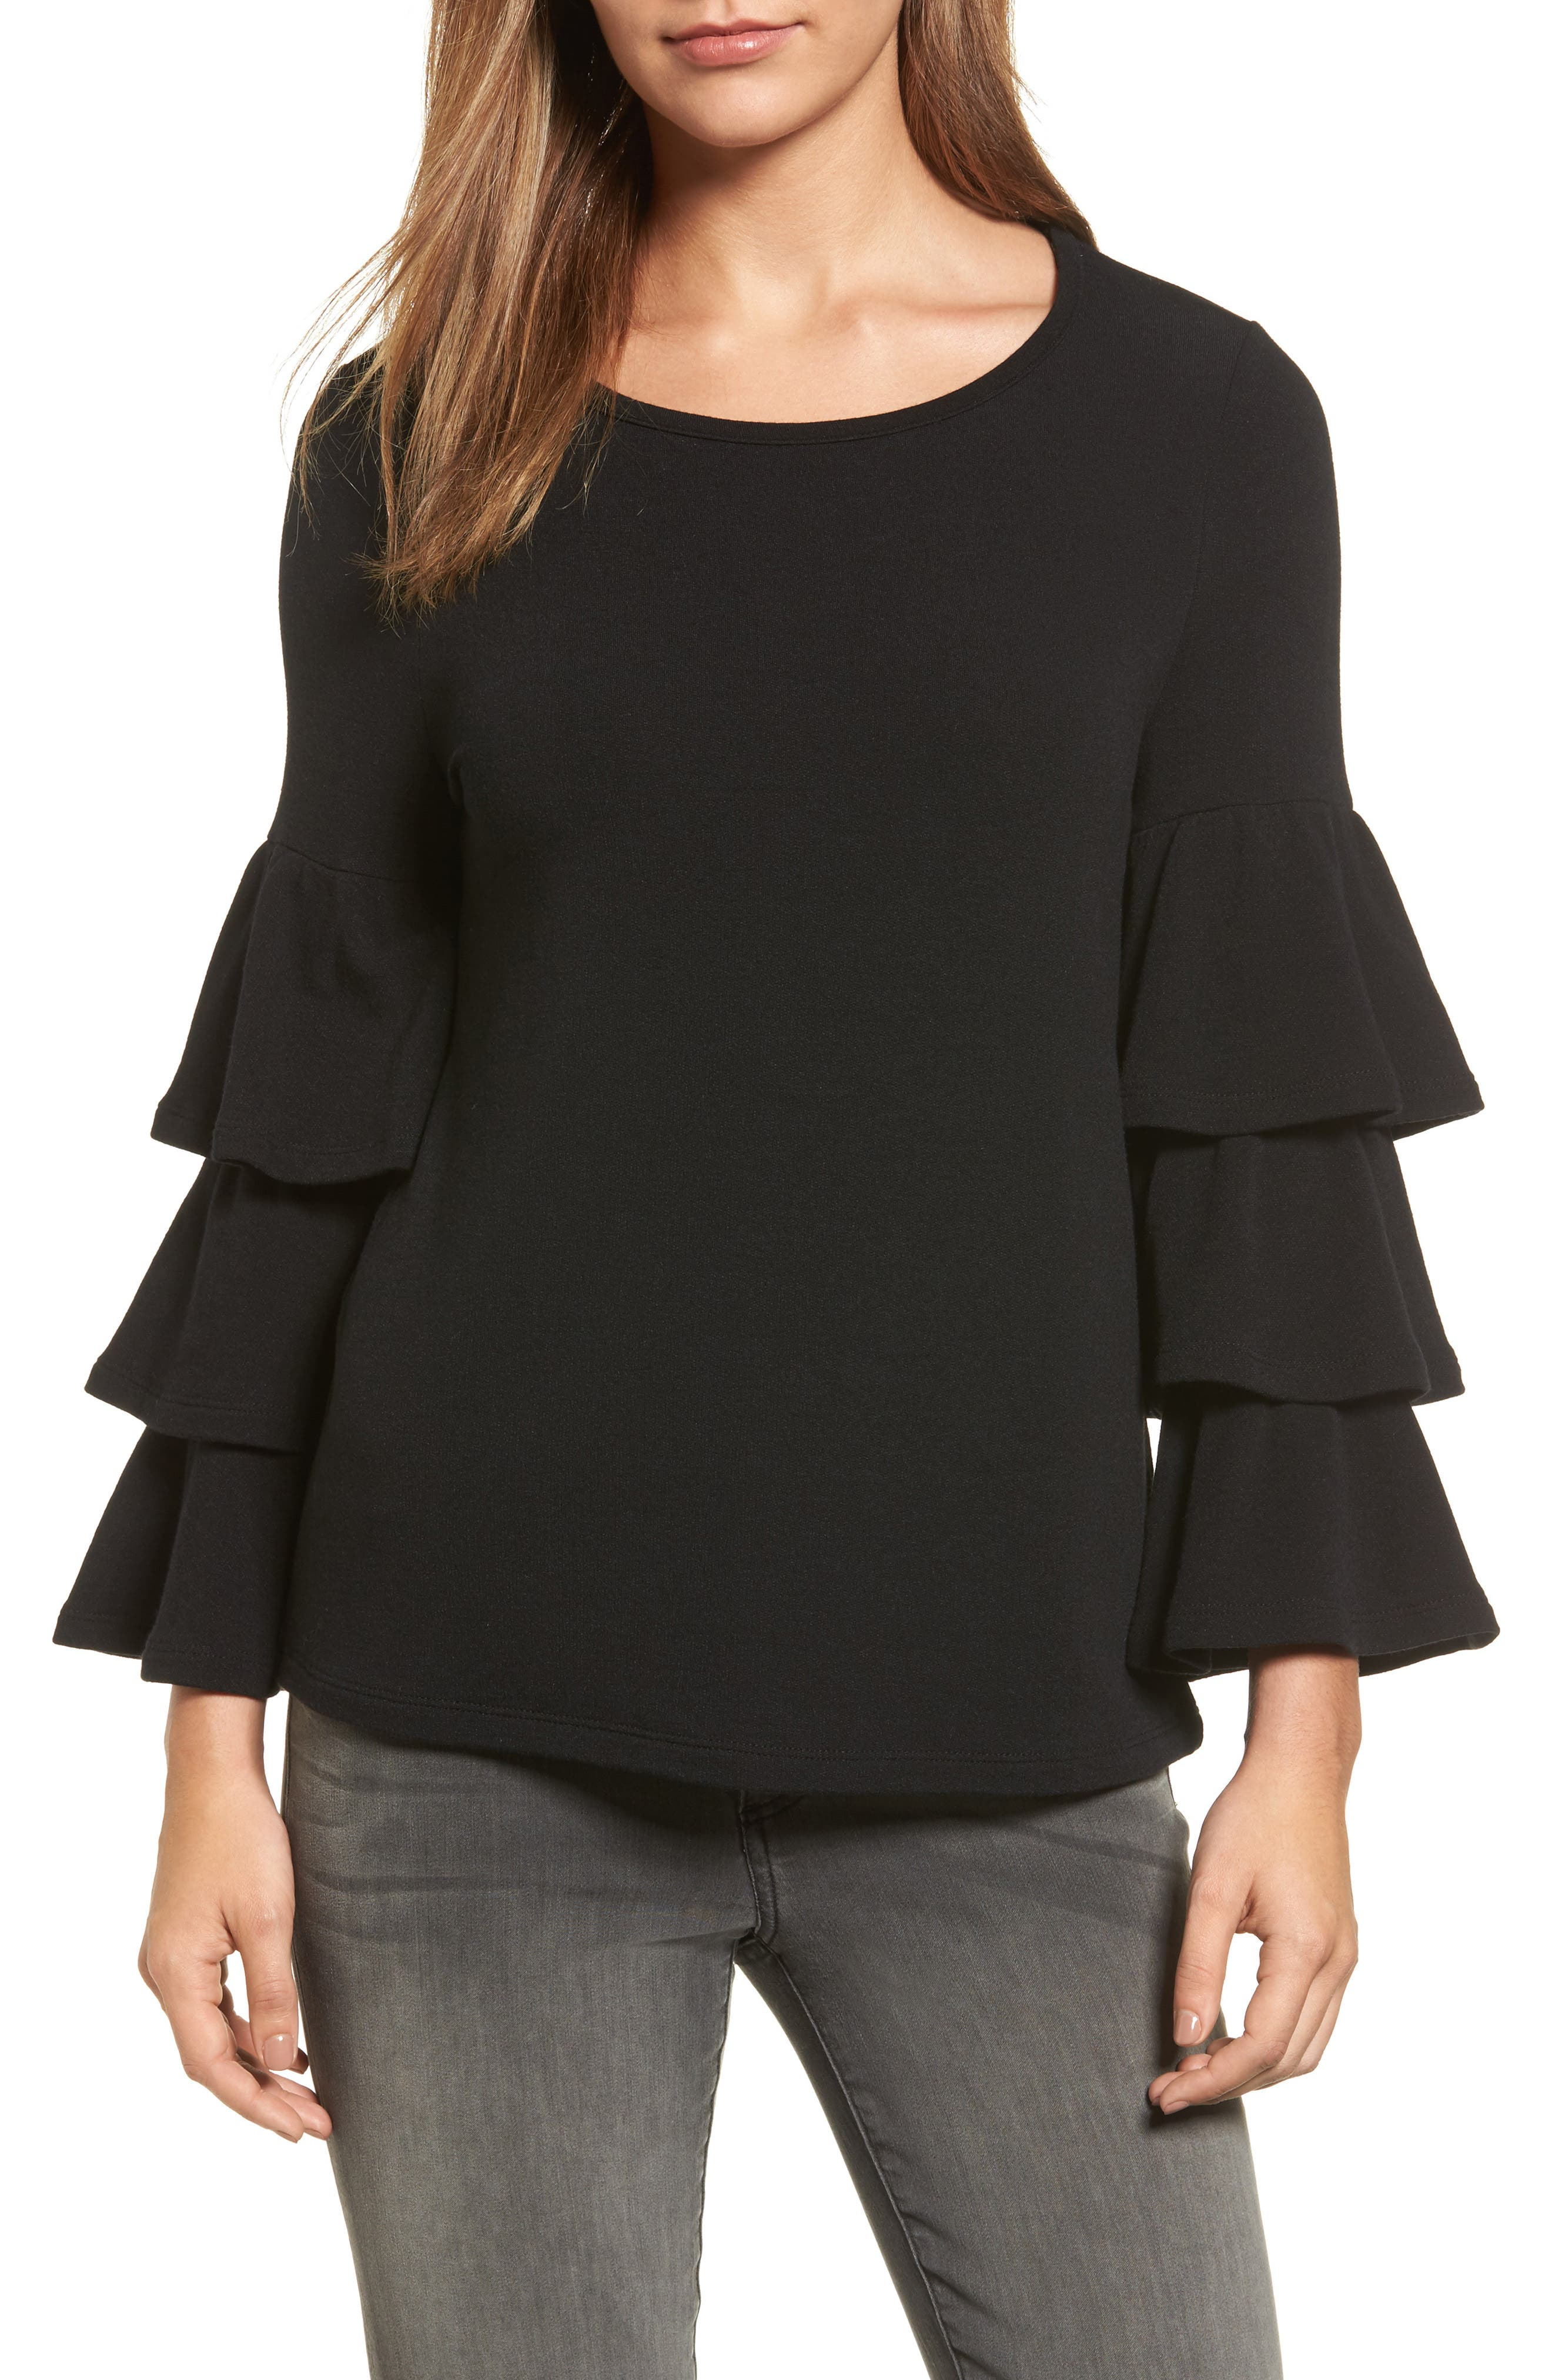 Alternate Image 1 Selected - Pleione Tiered Bell Sleeve Knit Top (Regular & Petite)